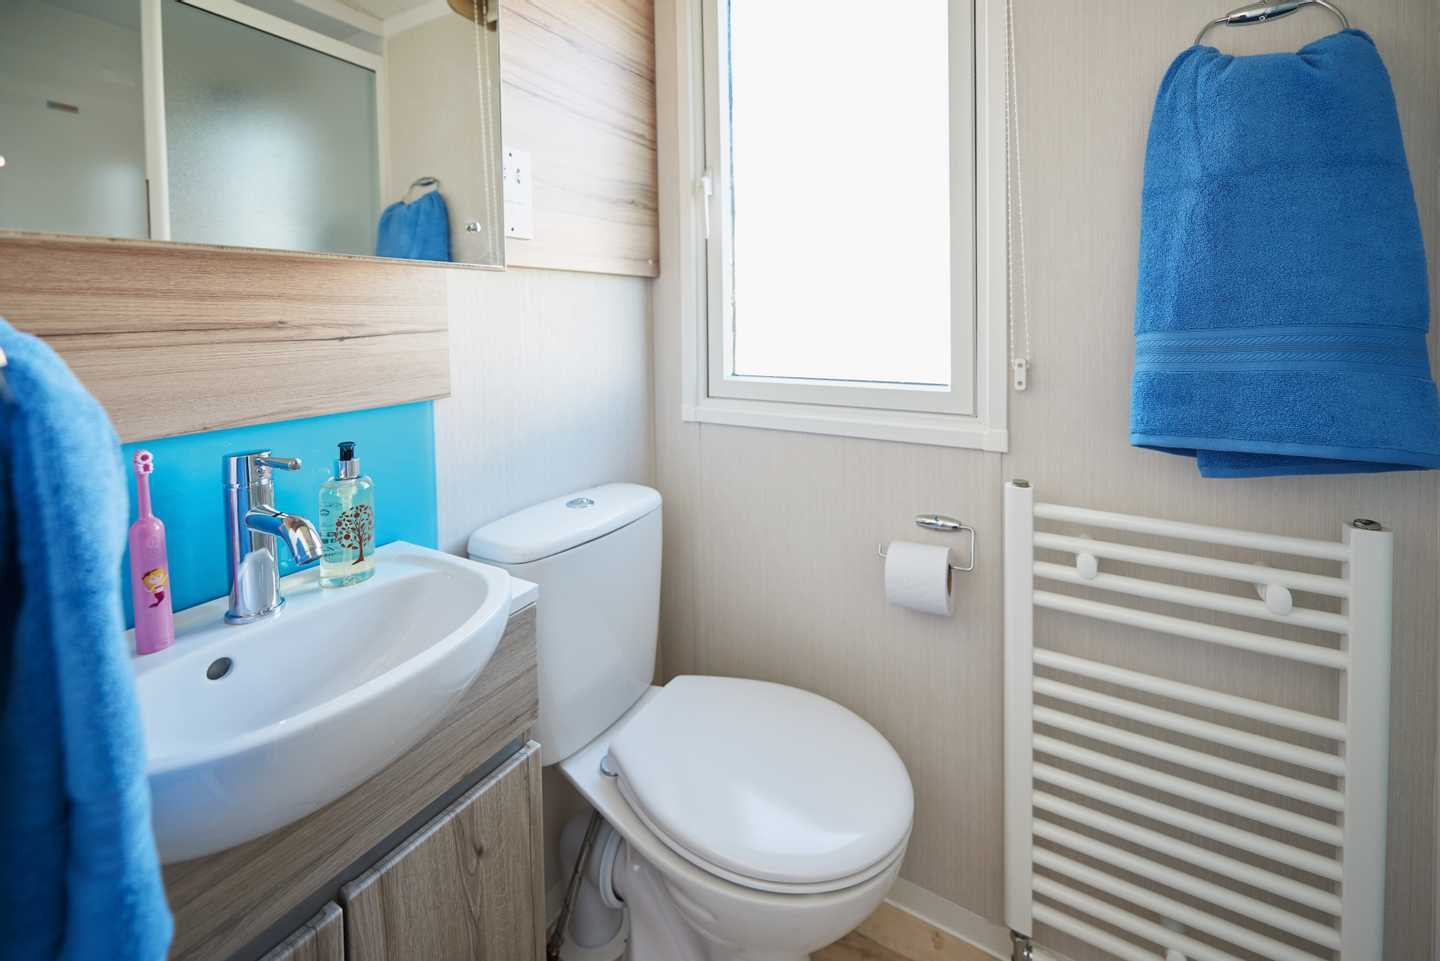 A newer Prestige caravan bathroom with a heated towel rail, toilet and sink